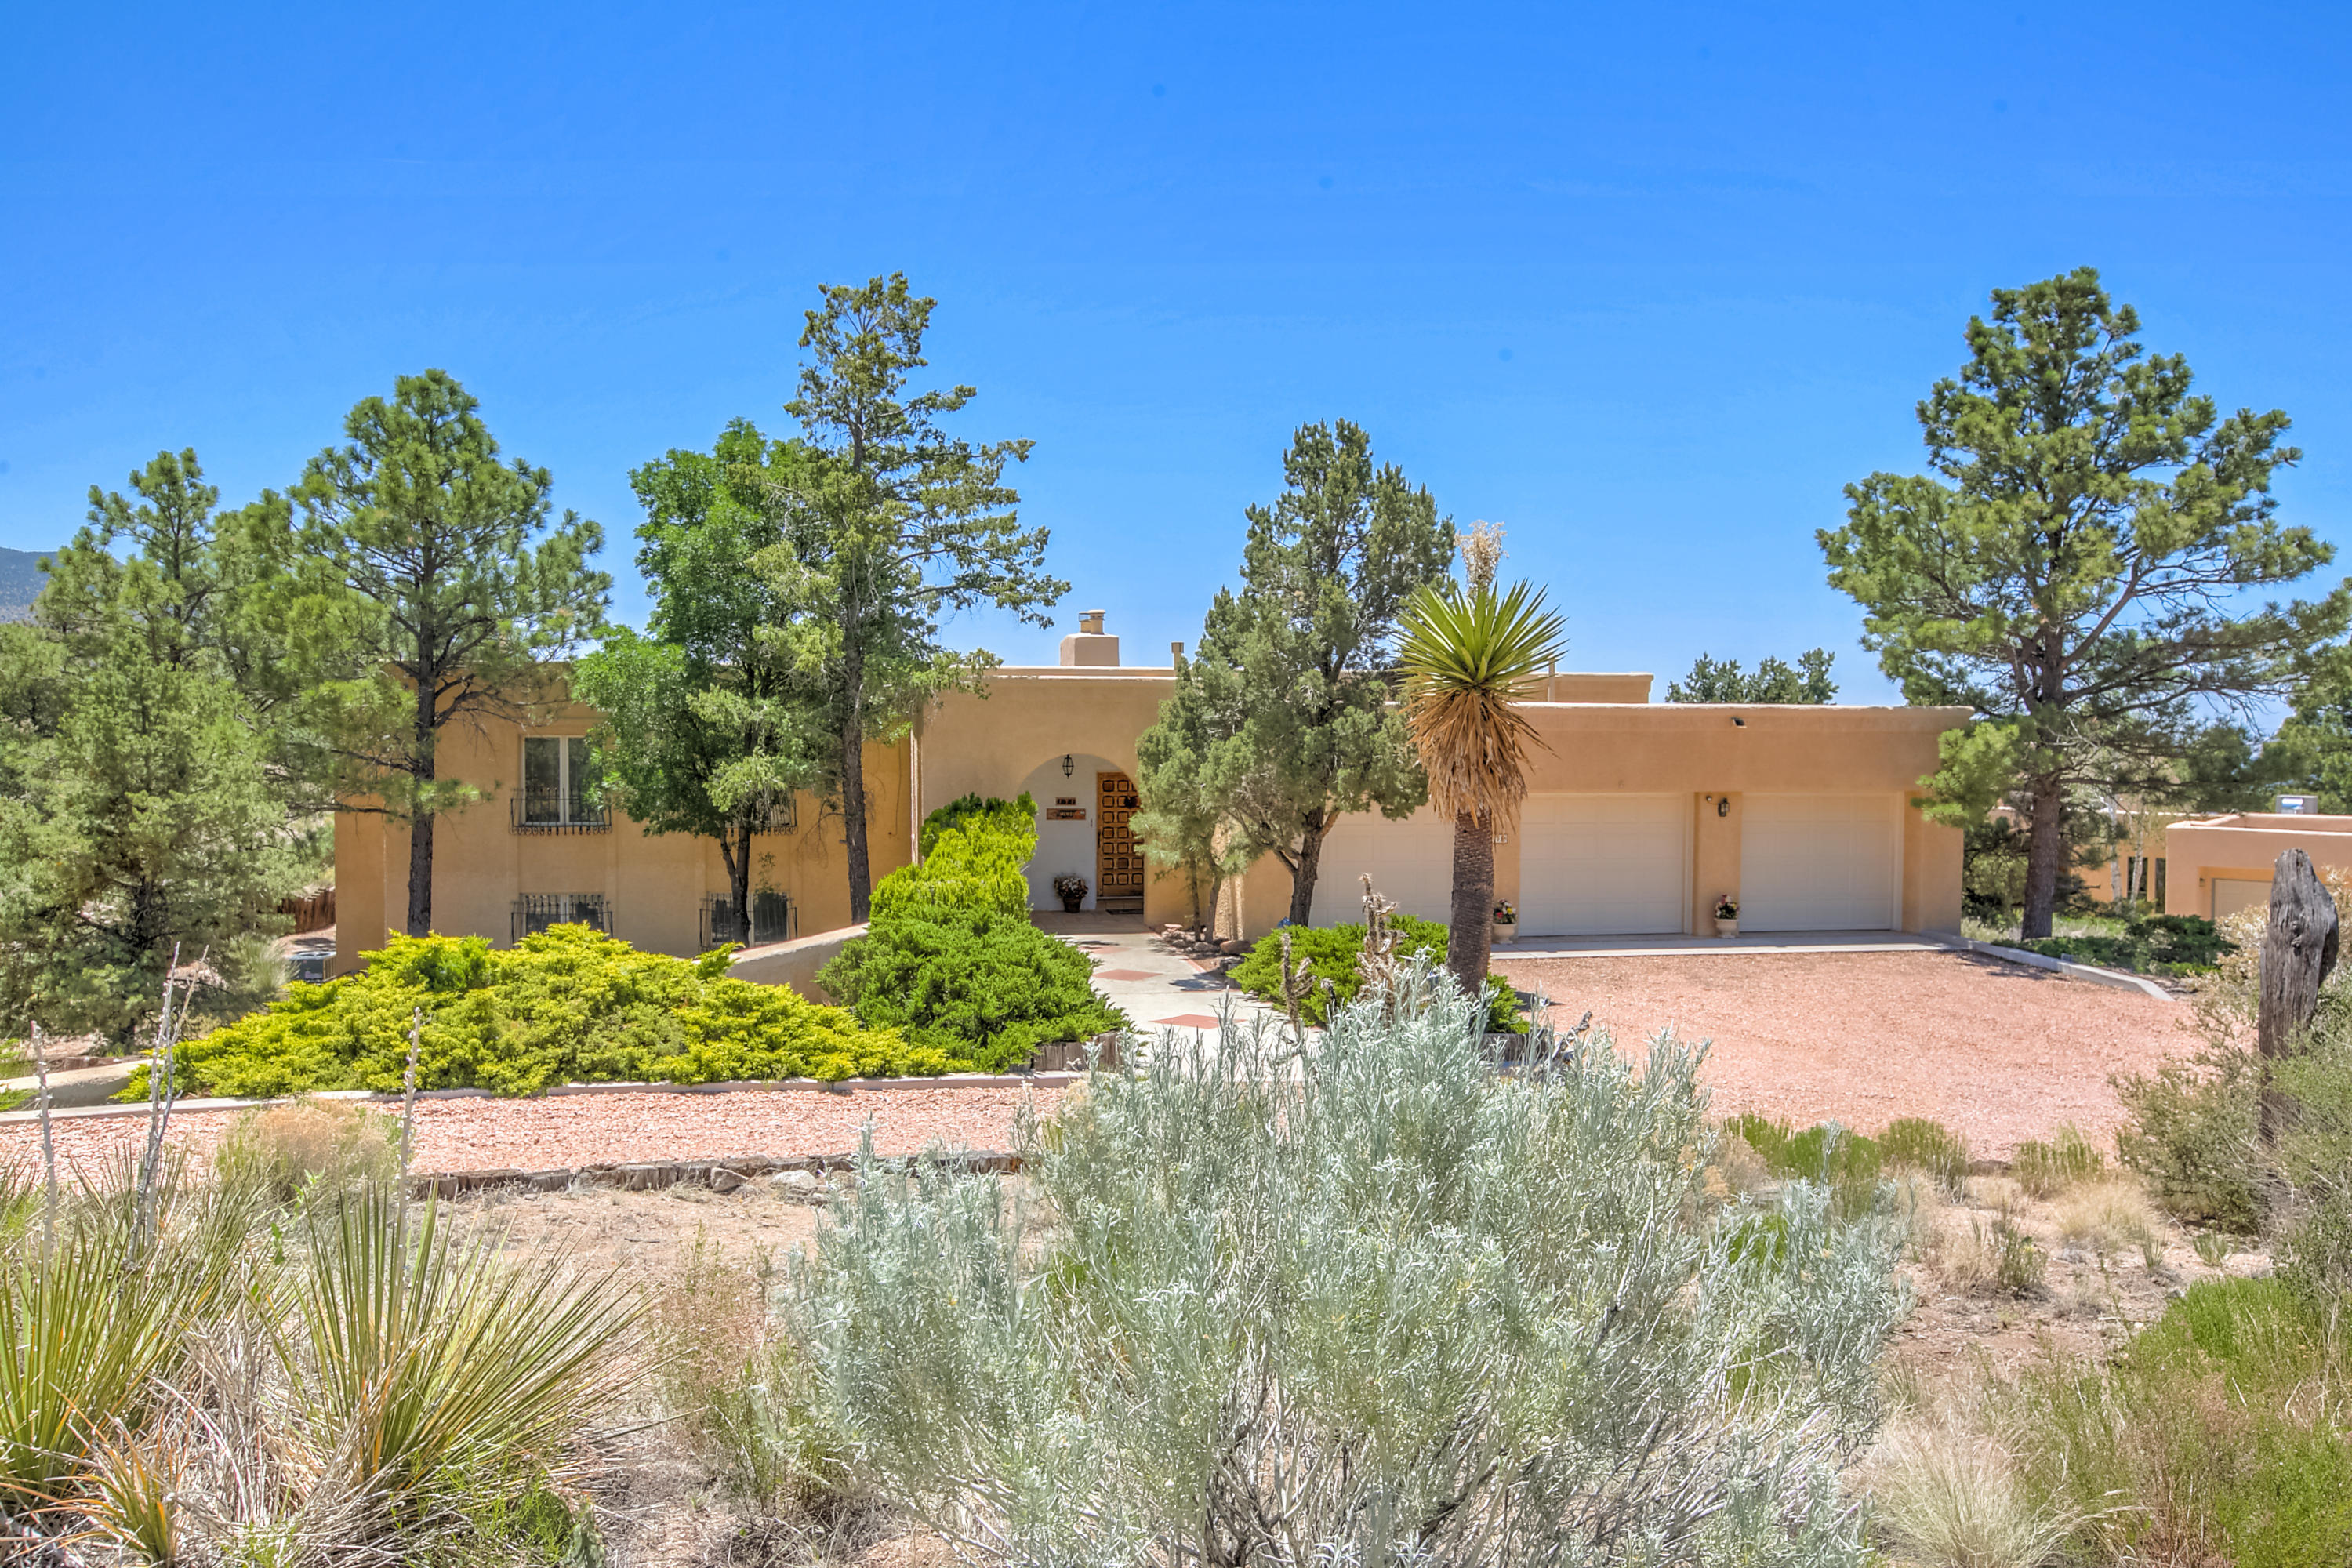 171 BIG HORN RIDGE DRIVE NE, ALBUQUERQUE, NM 87122